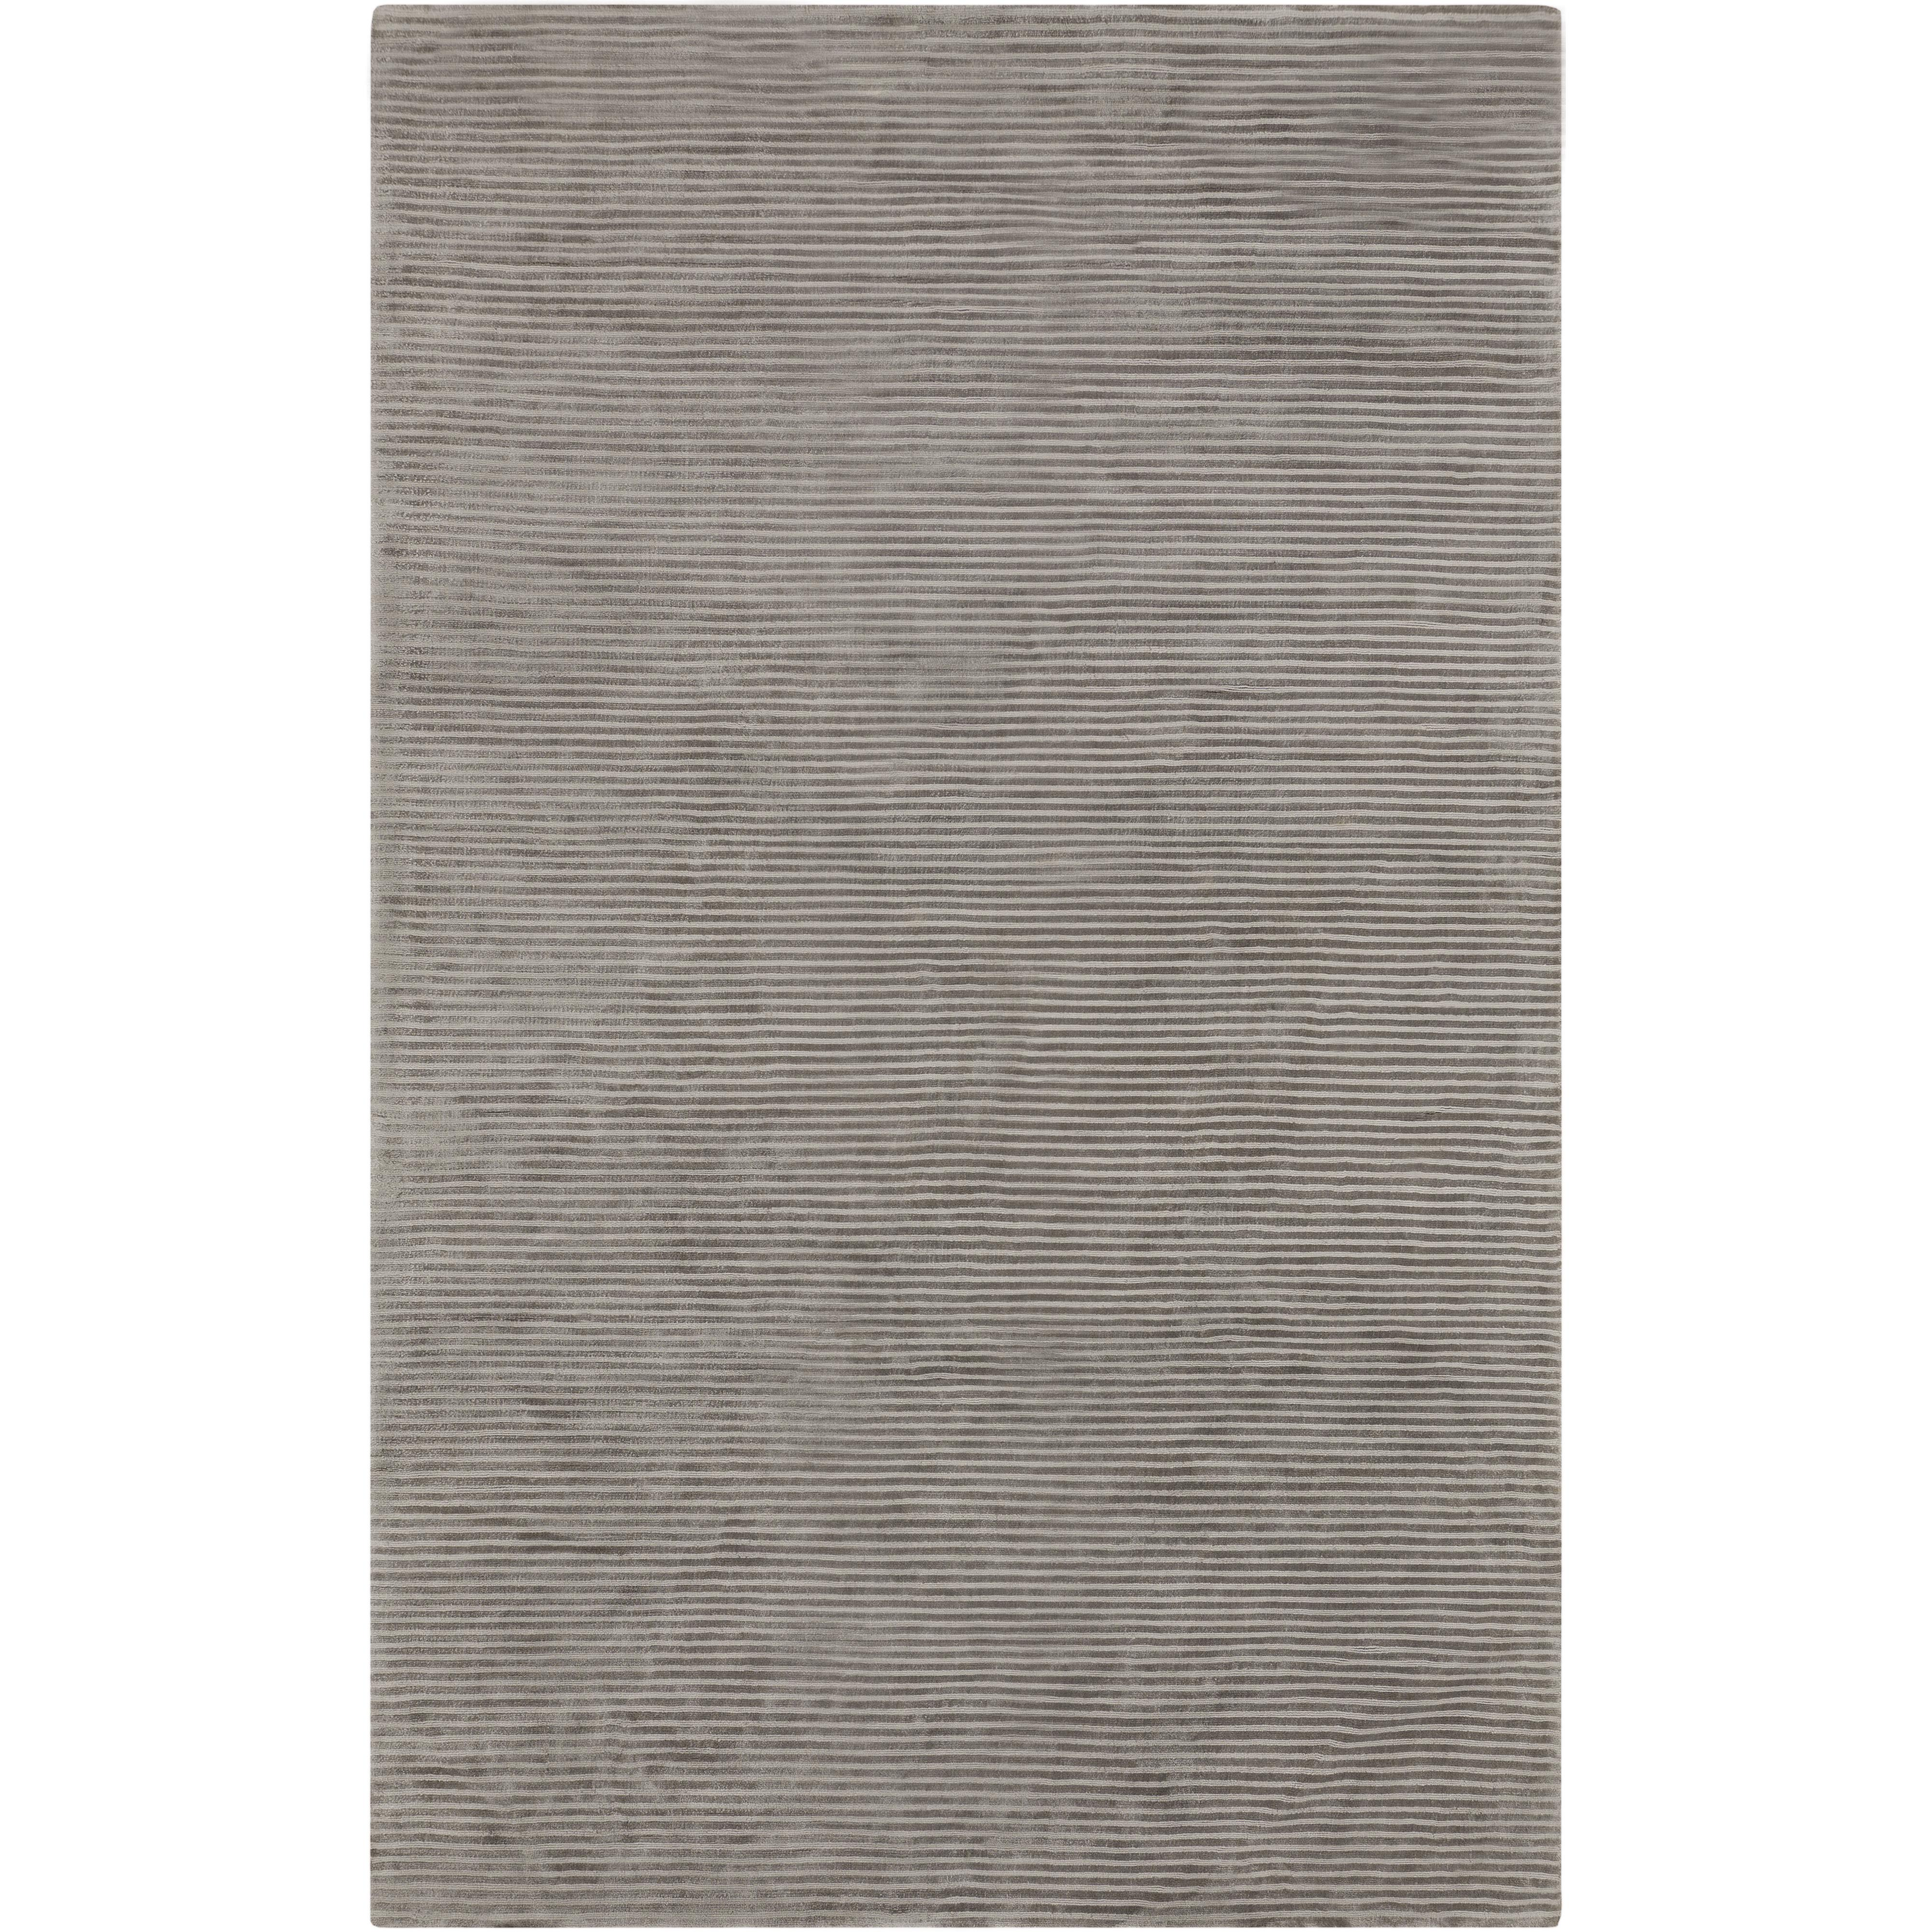 "Surya Graphite 3'3"" x 5'3"" - Item Number: GPH52-3353"